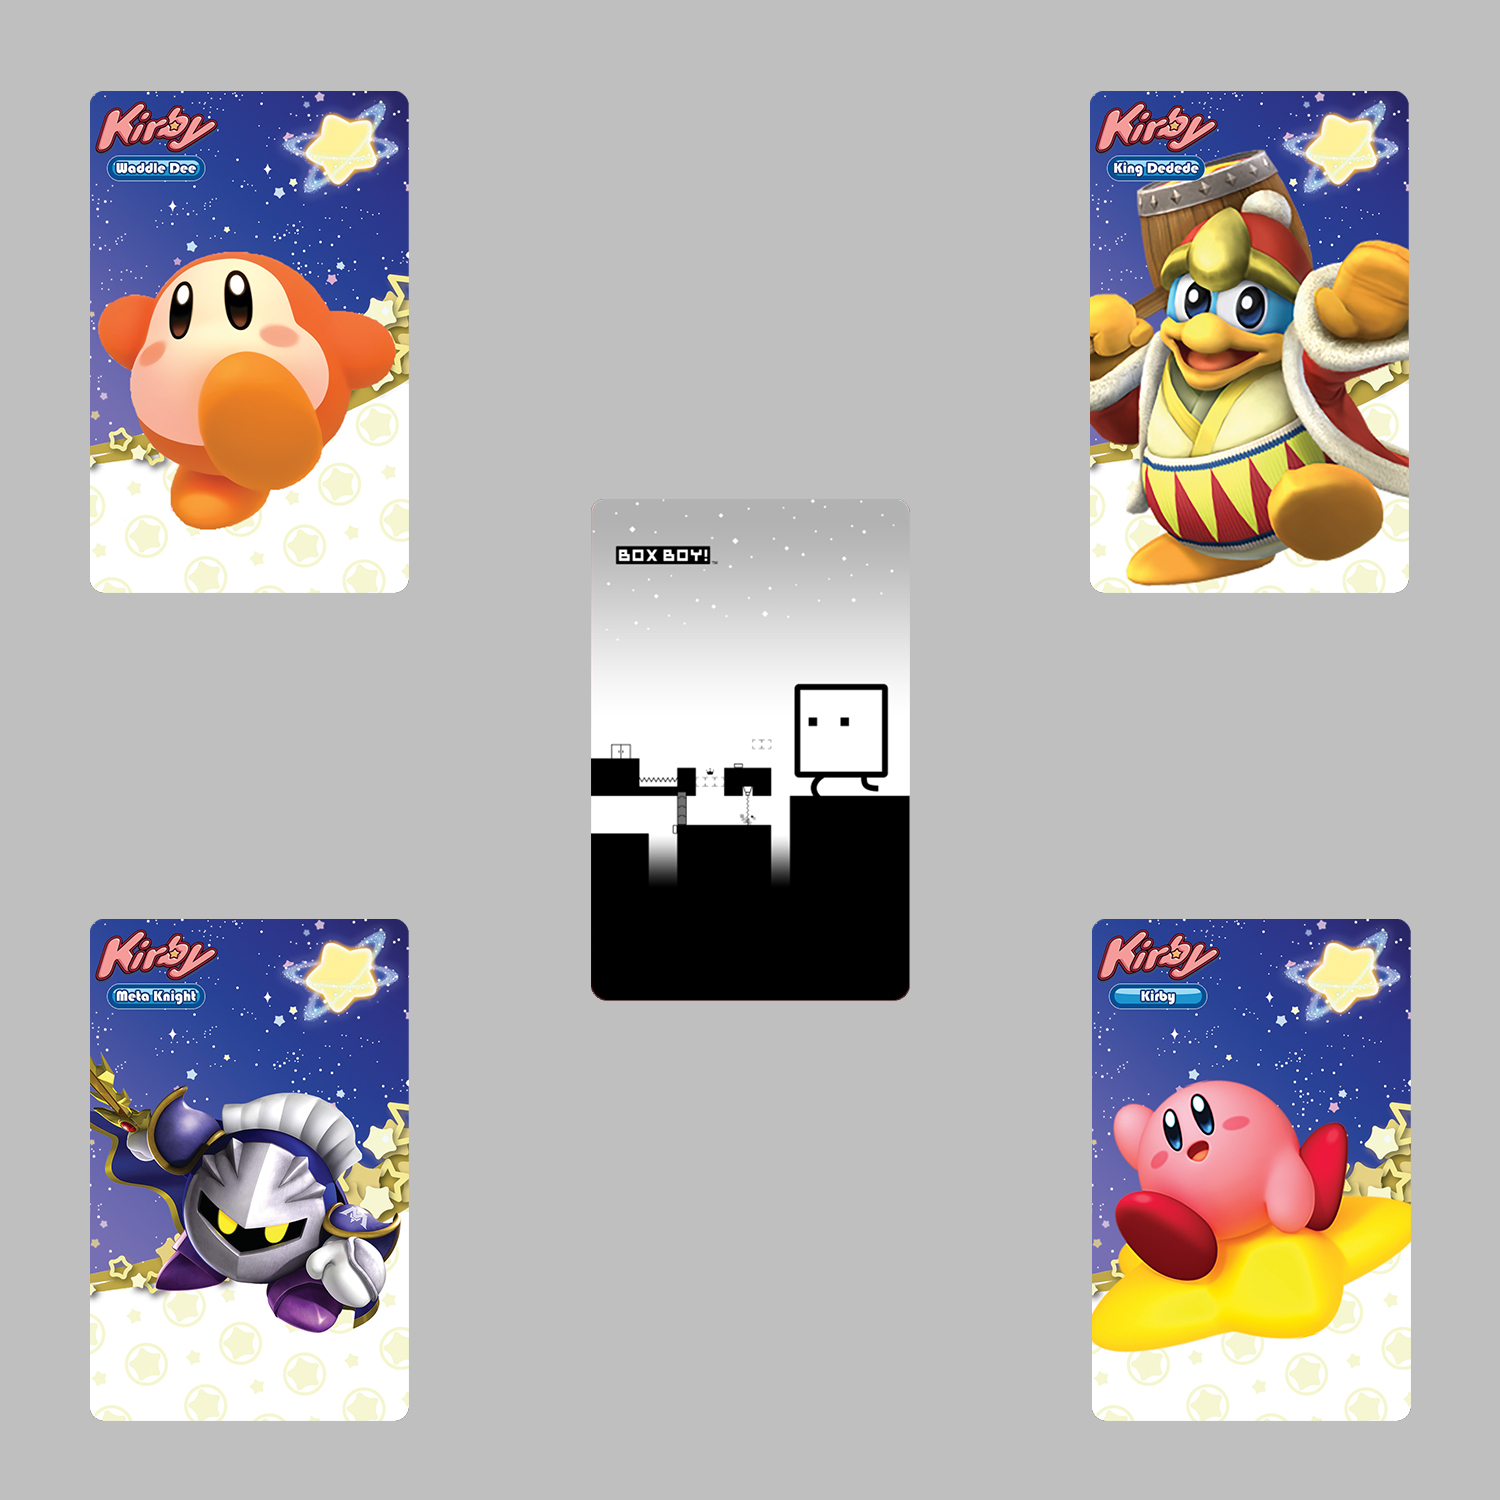 Details about Kirby Star Allies & BoxBoy QBBY 5PCS PVC NFC Tag Game Cards  for Switch/Wii U